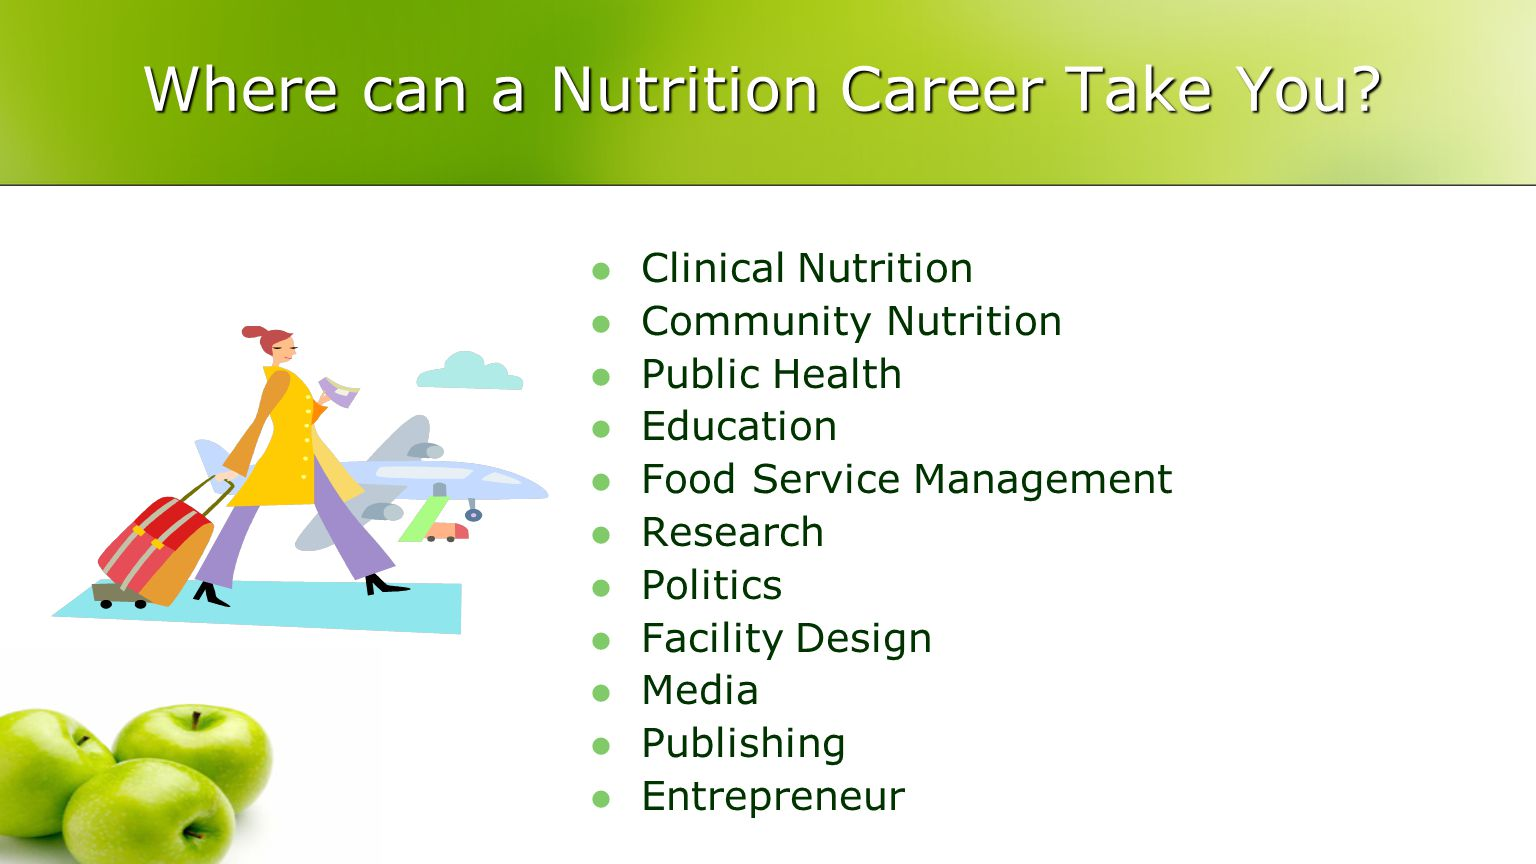 Where can a Nutrition Career Take You.